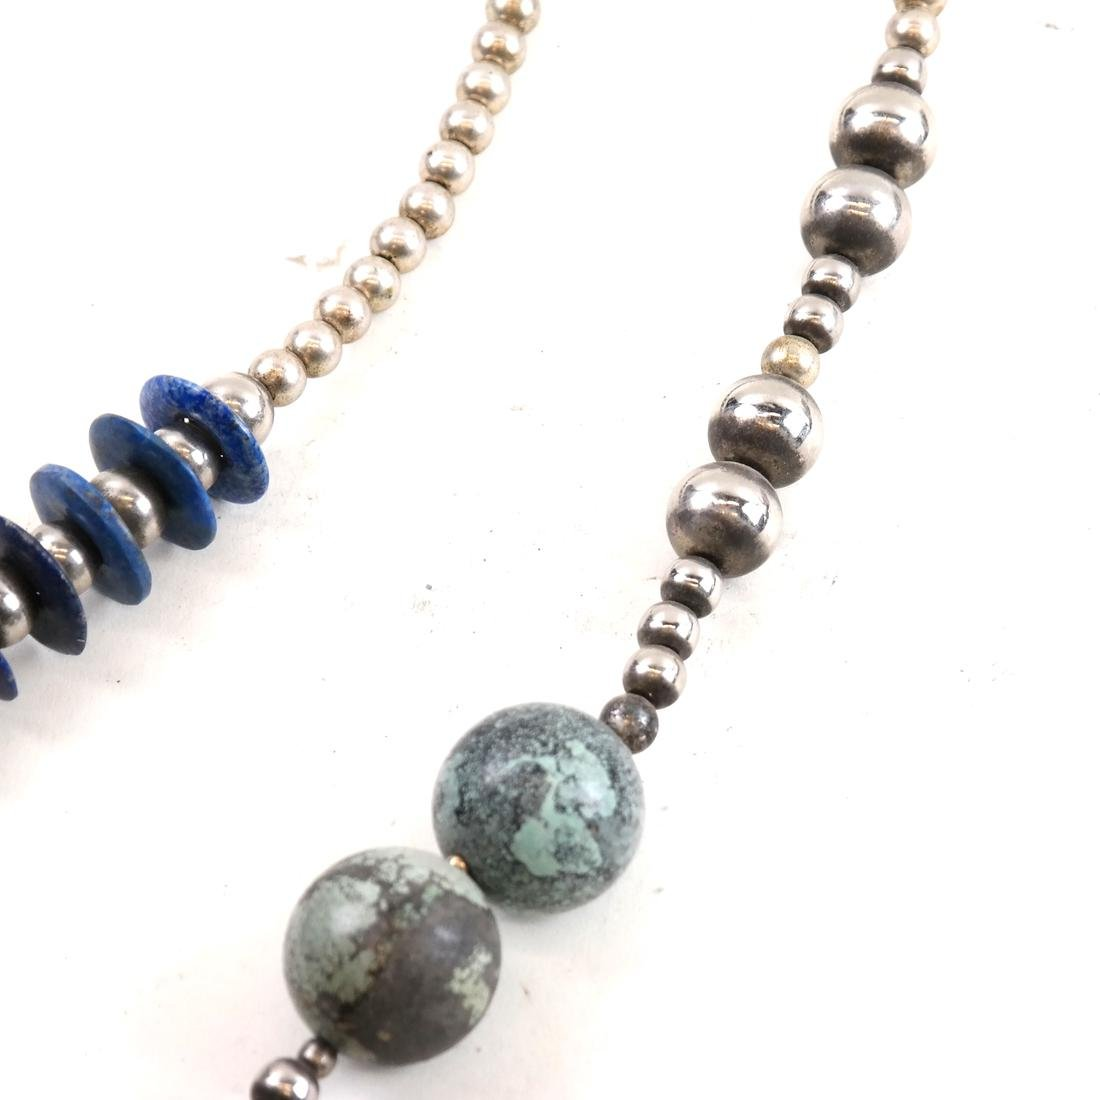 Asymmetrical Hardstone Necklace - 3